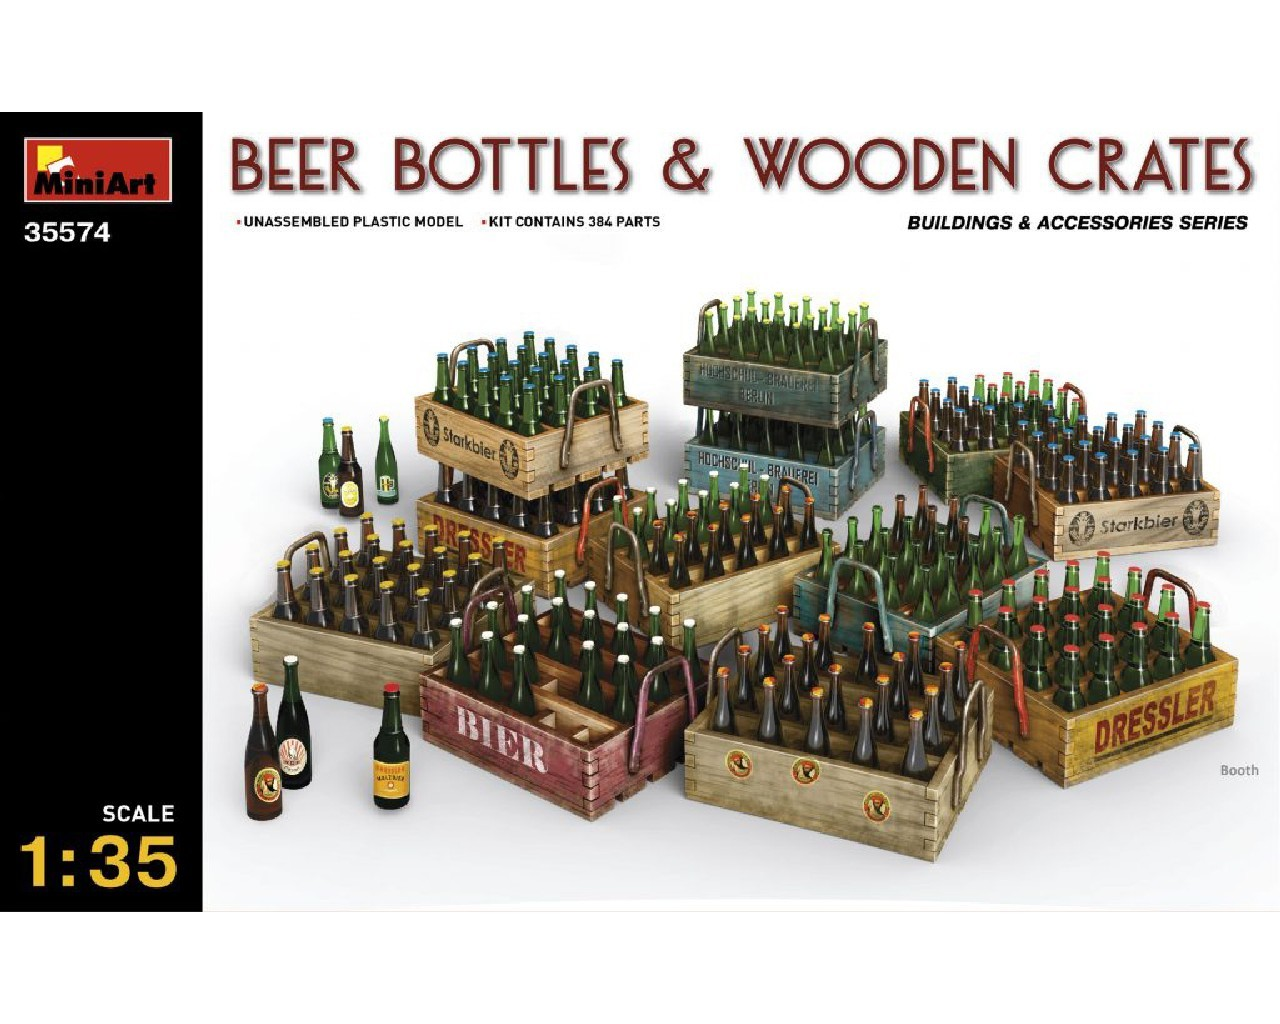 1/35 Beer Bottles and Wooden Crates